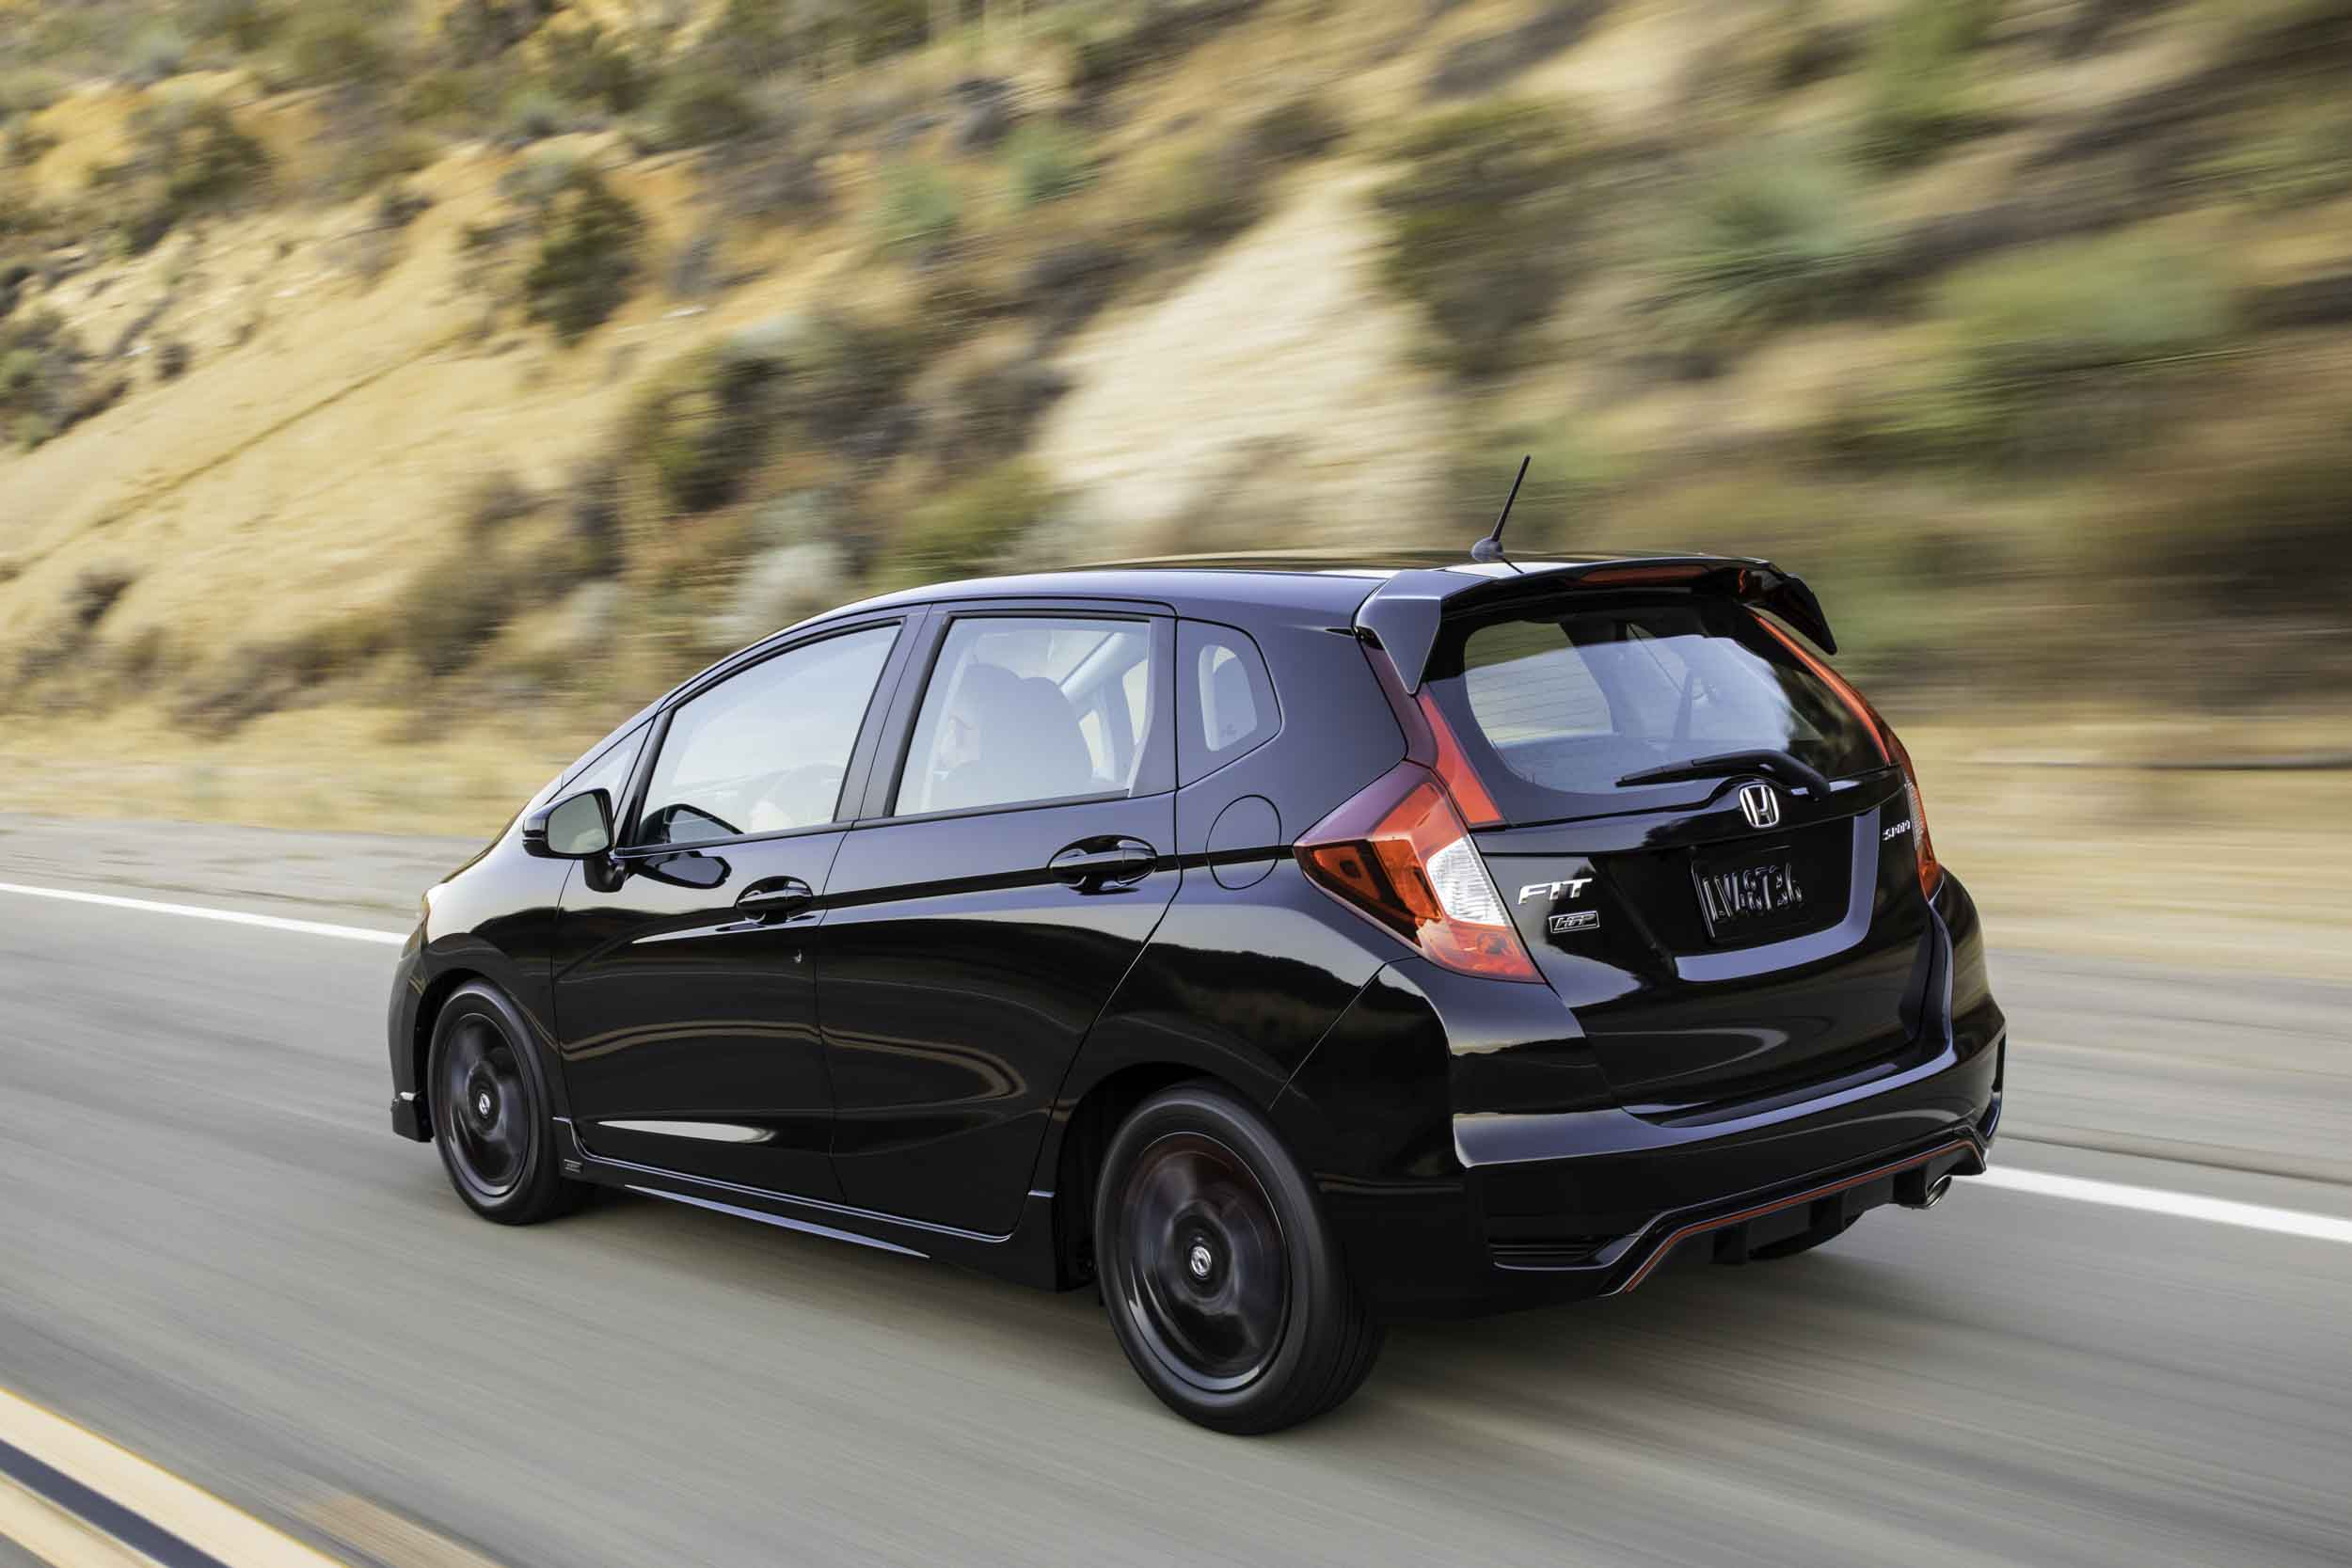 Honda Fit Discontinued for the U.S., Despite New Global